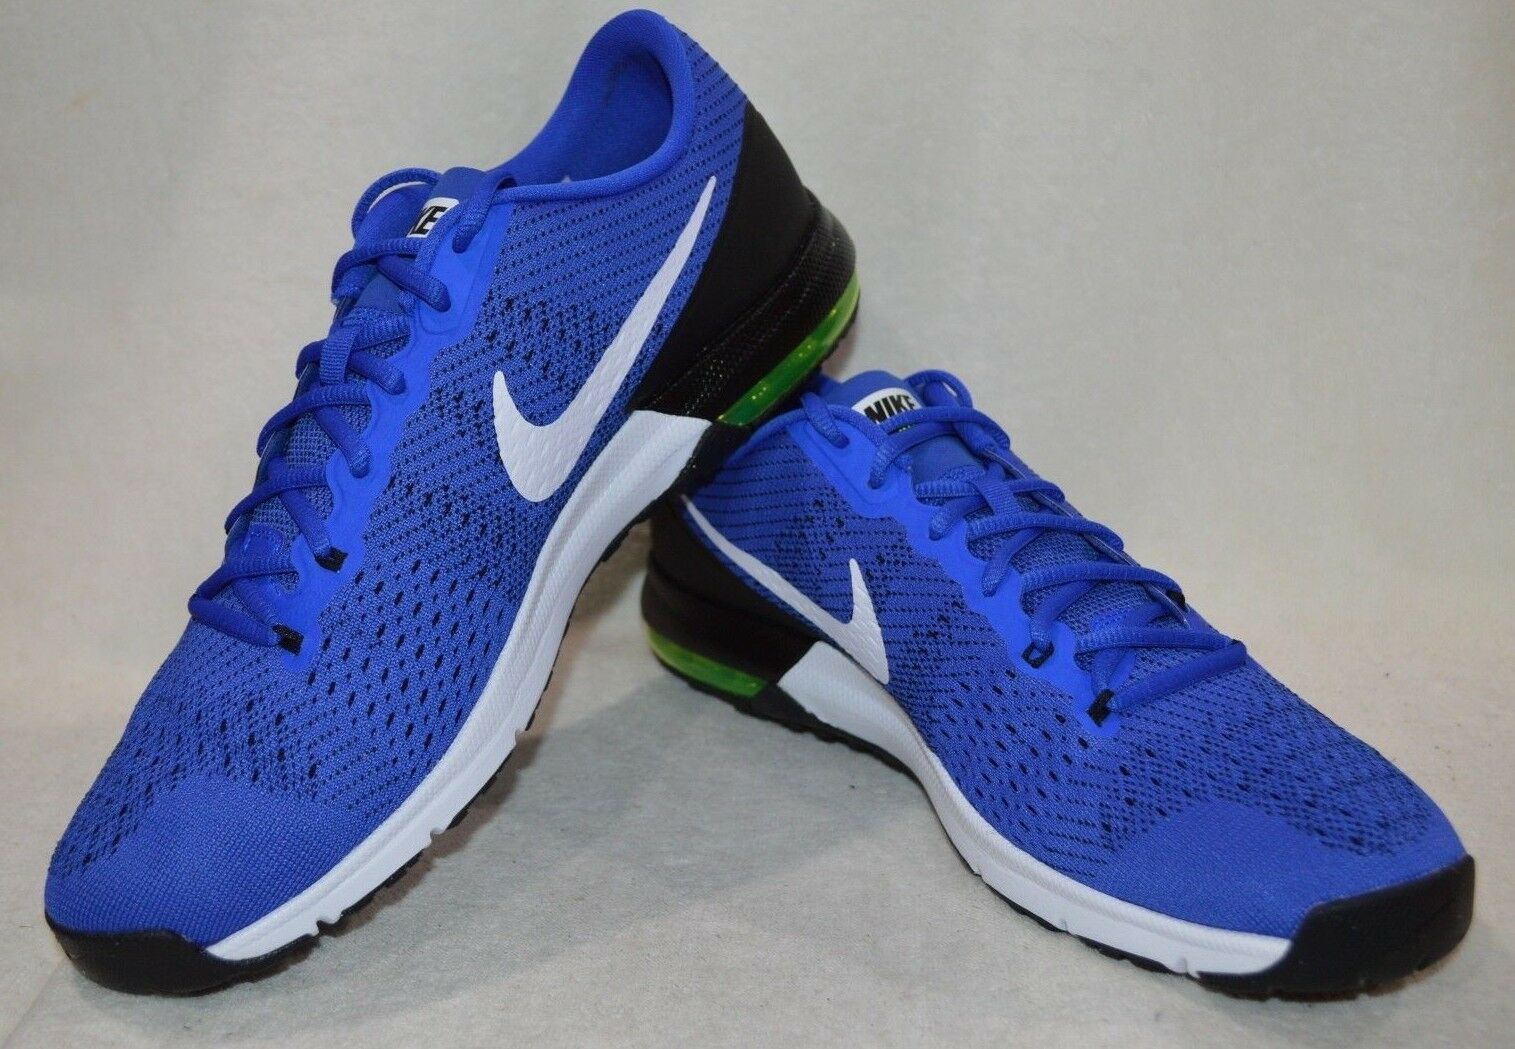 Nike Air Max Typha bluee White Volt Men's Training shoes - Assorted Sizes NWB